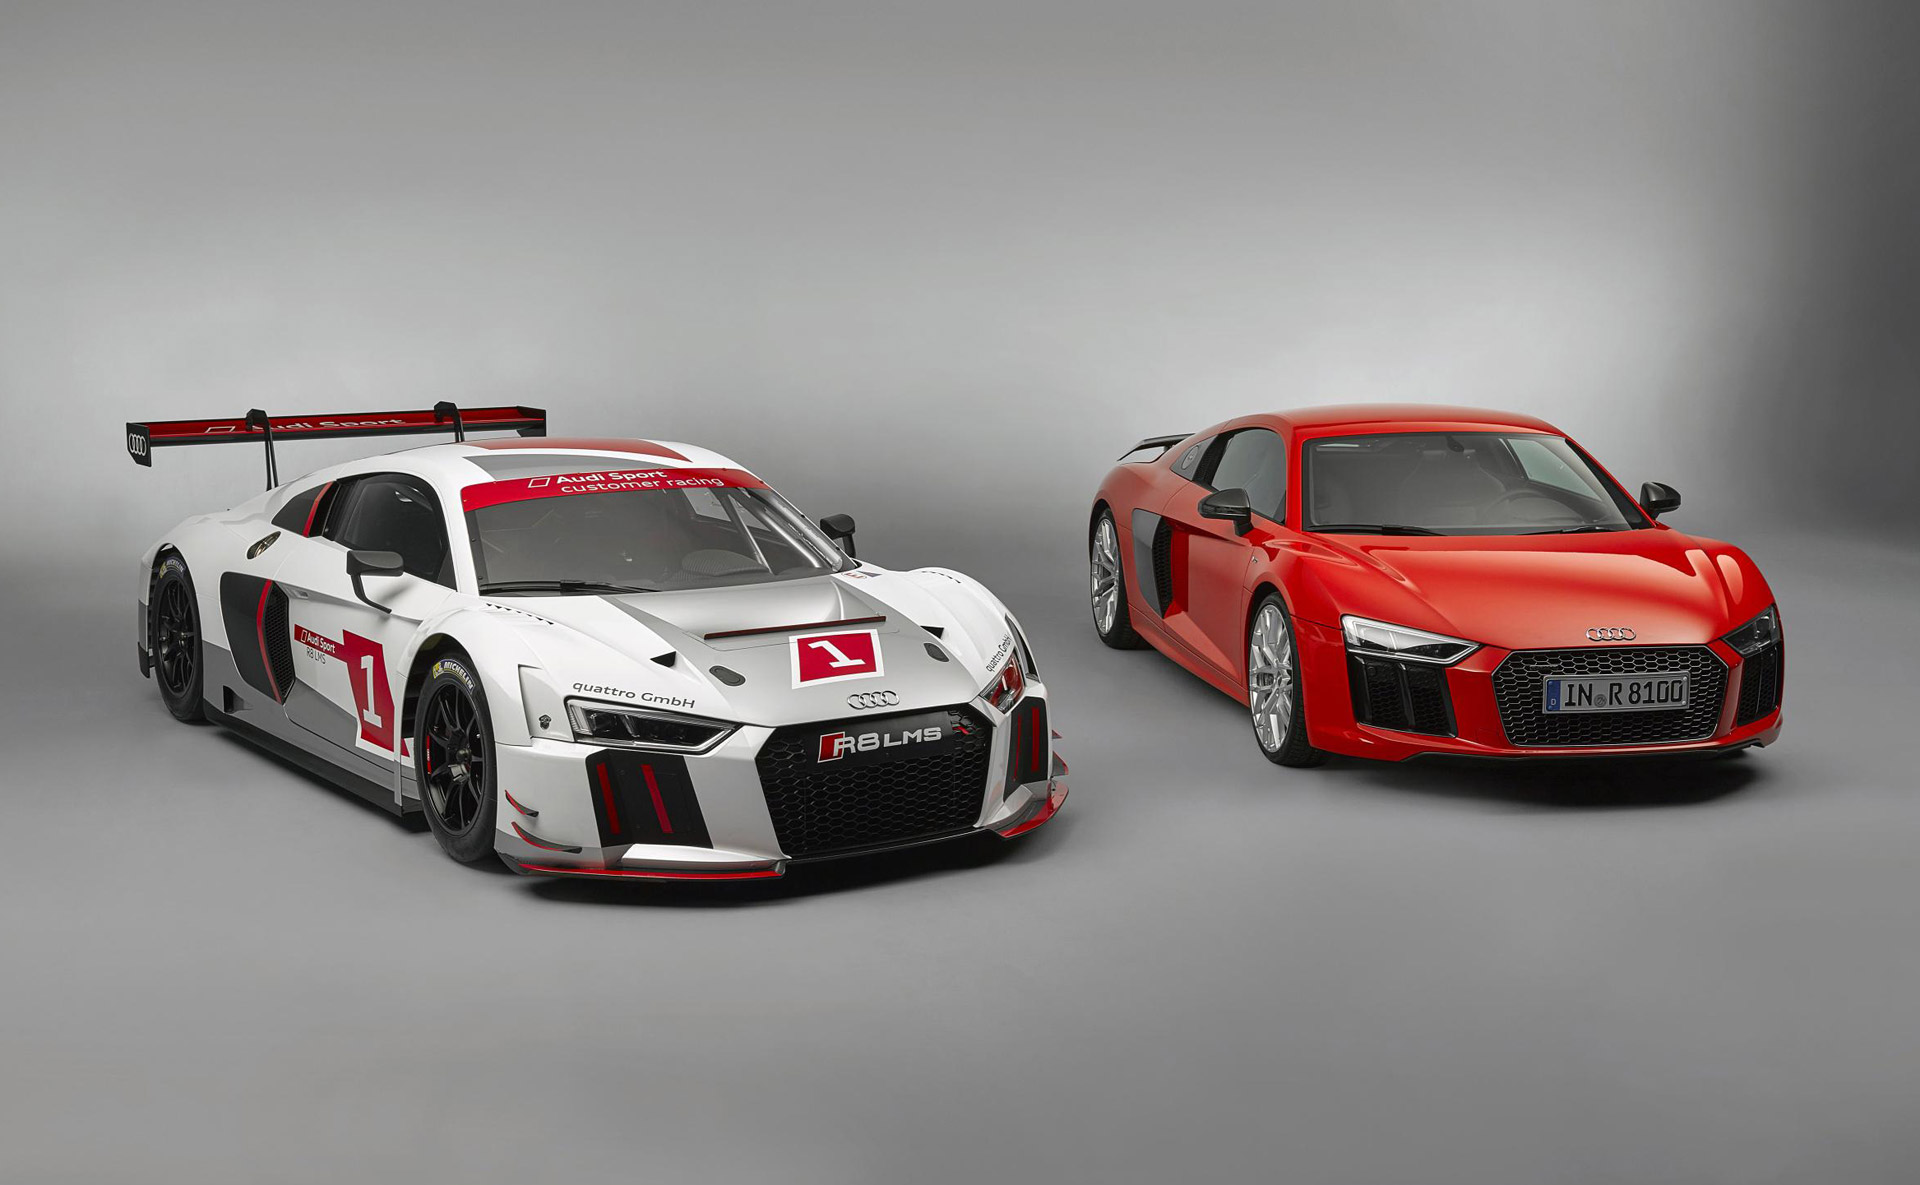 Audi Lms Race Car Ready For Order